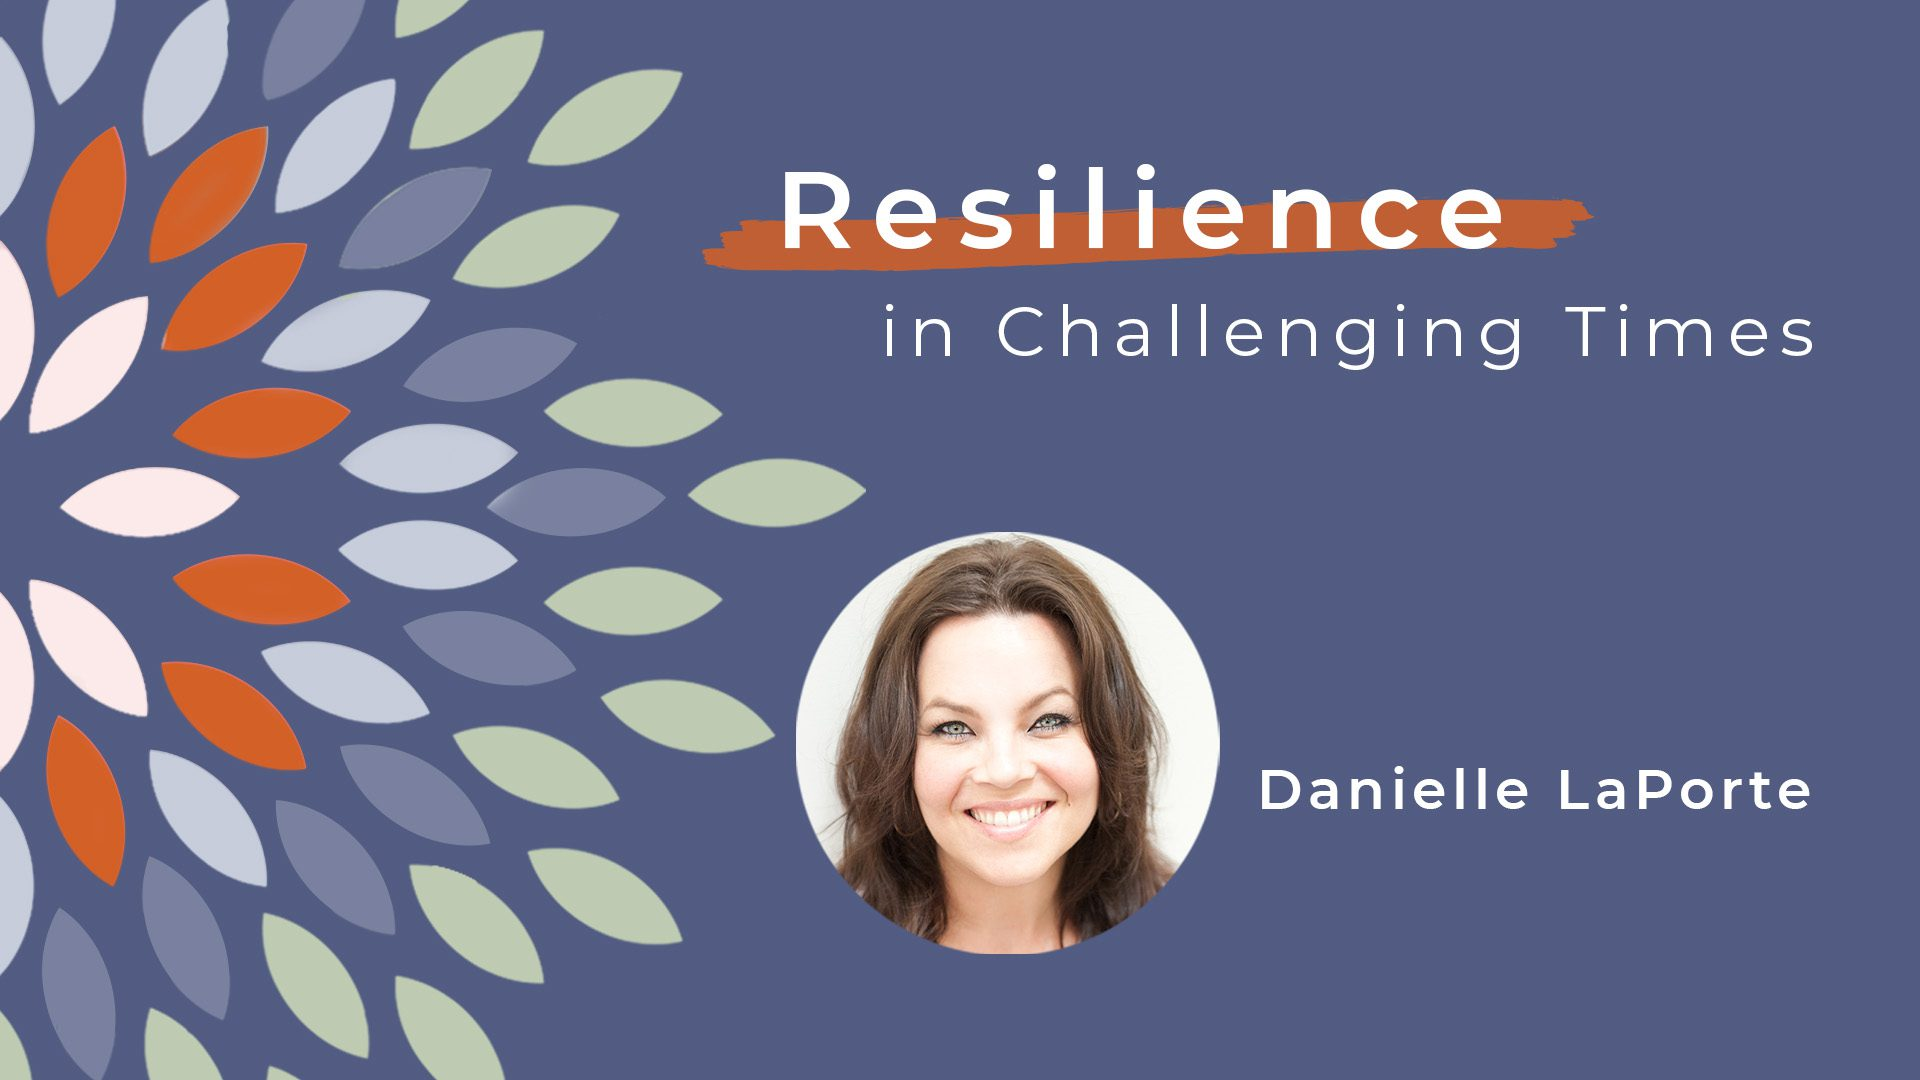 Resiliece-video-Danielle LaPorte-title-card